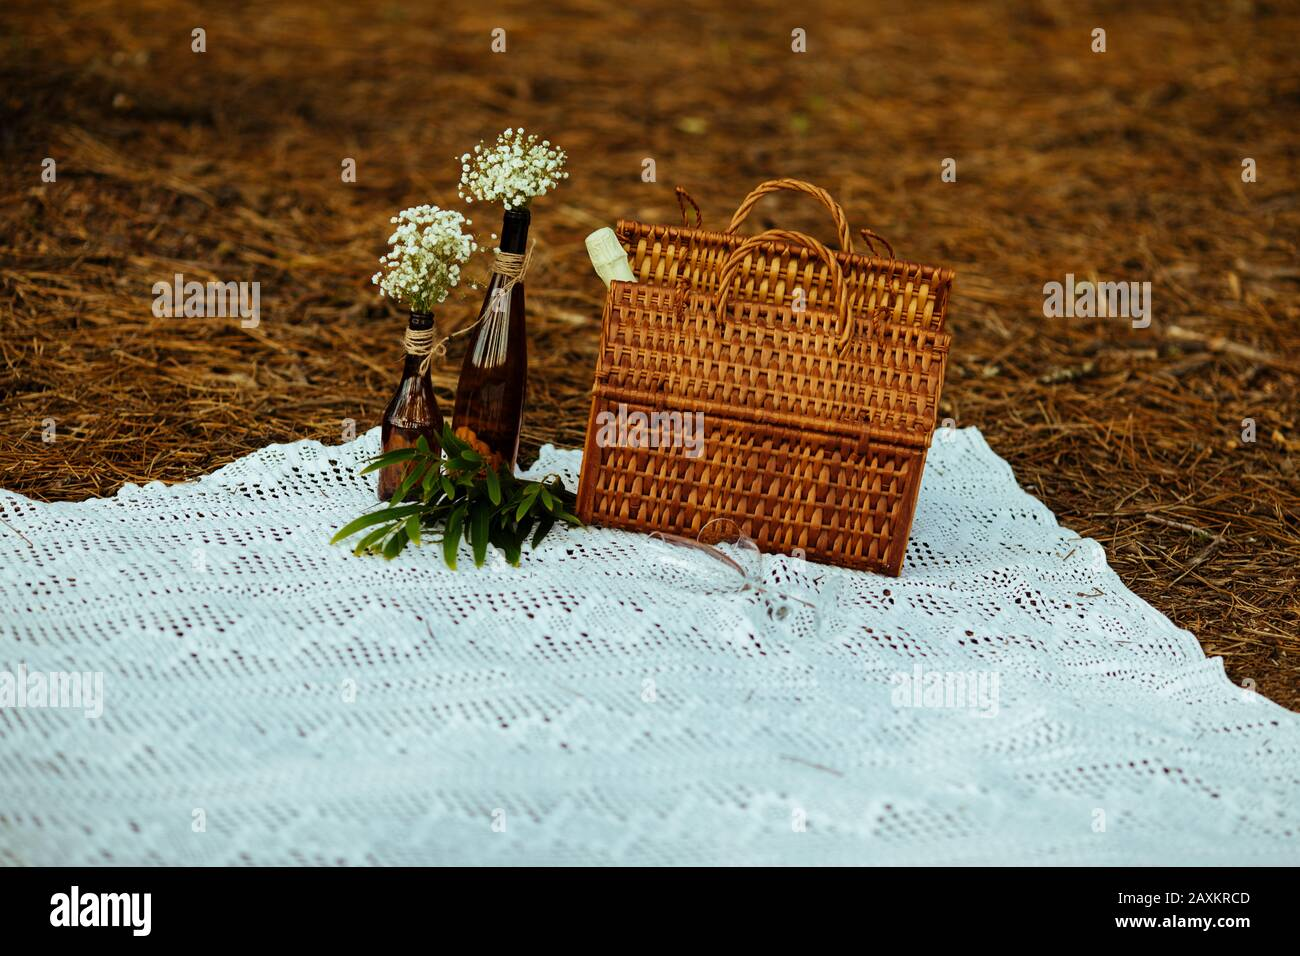 Wicker Picnic Basket In The Forest With Autumn Tones Over A Vintage Lace Blanket Romantic Date Stock Photo Alamy